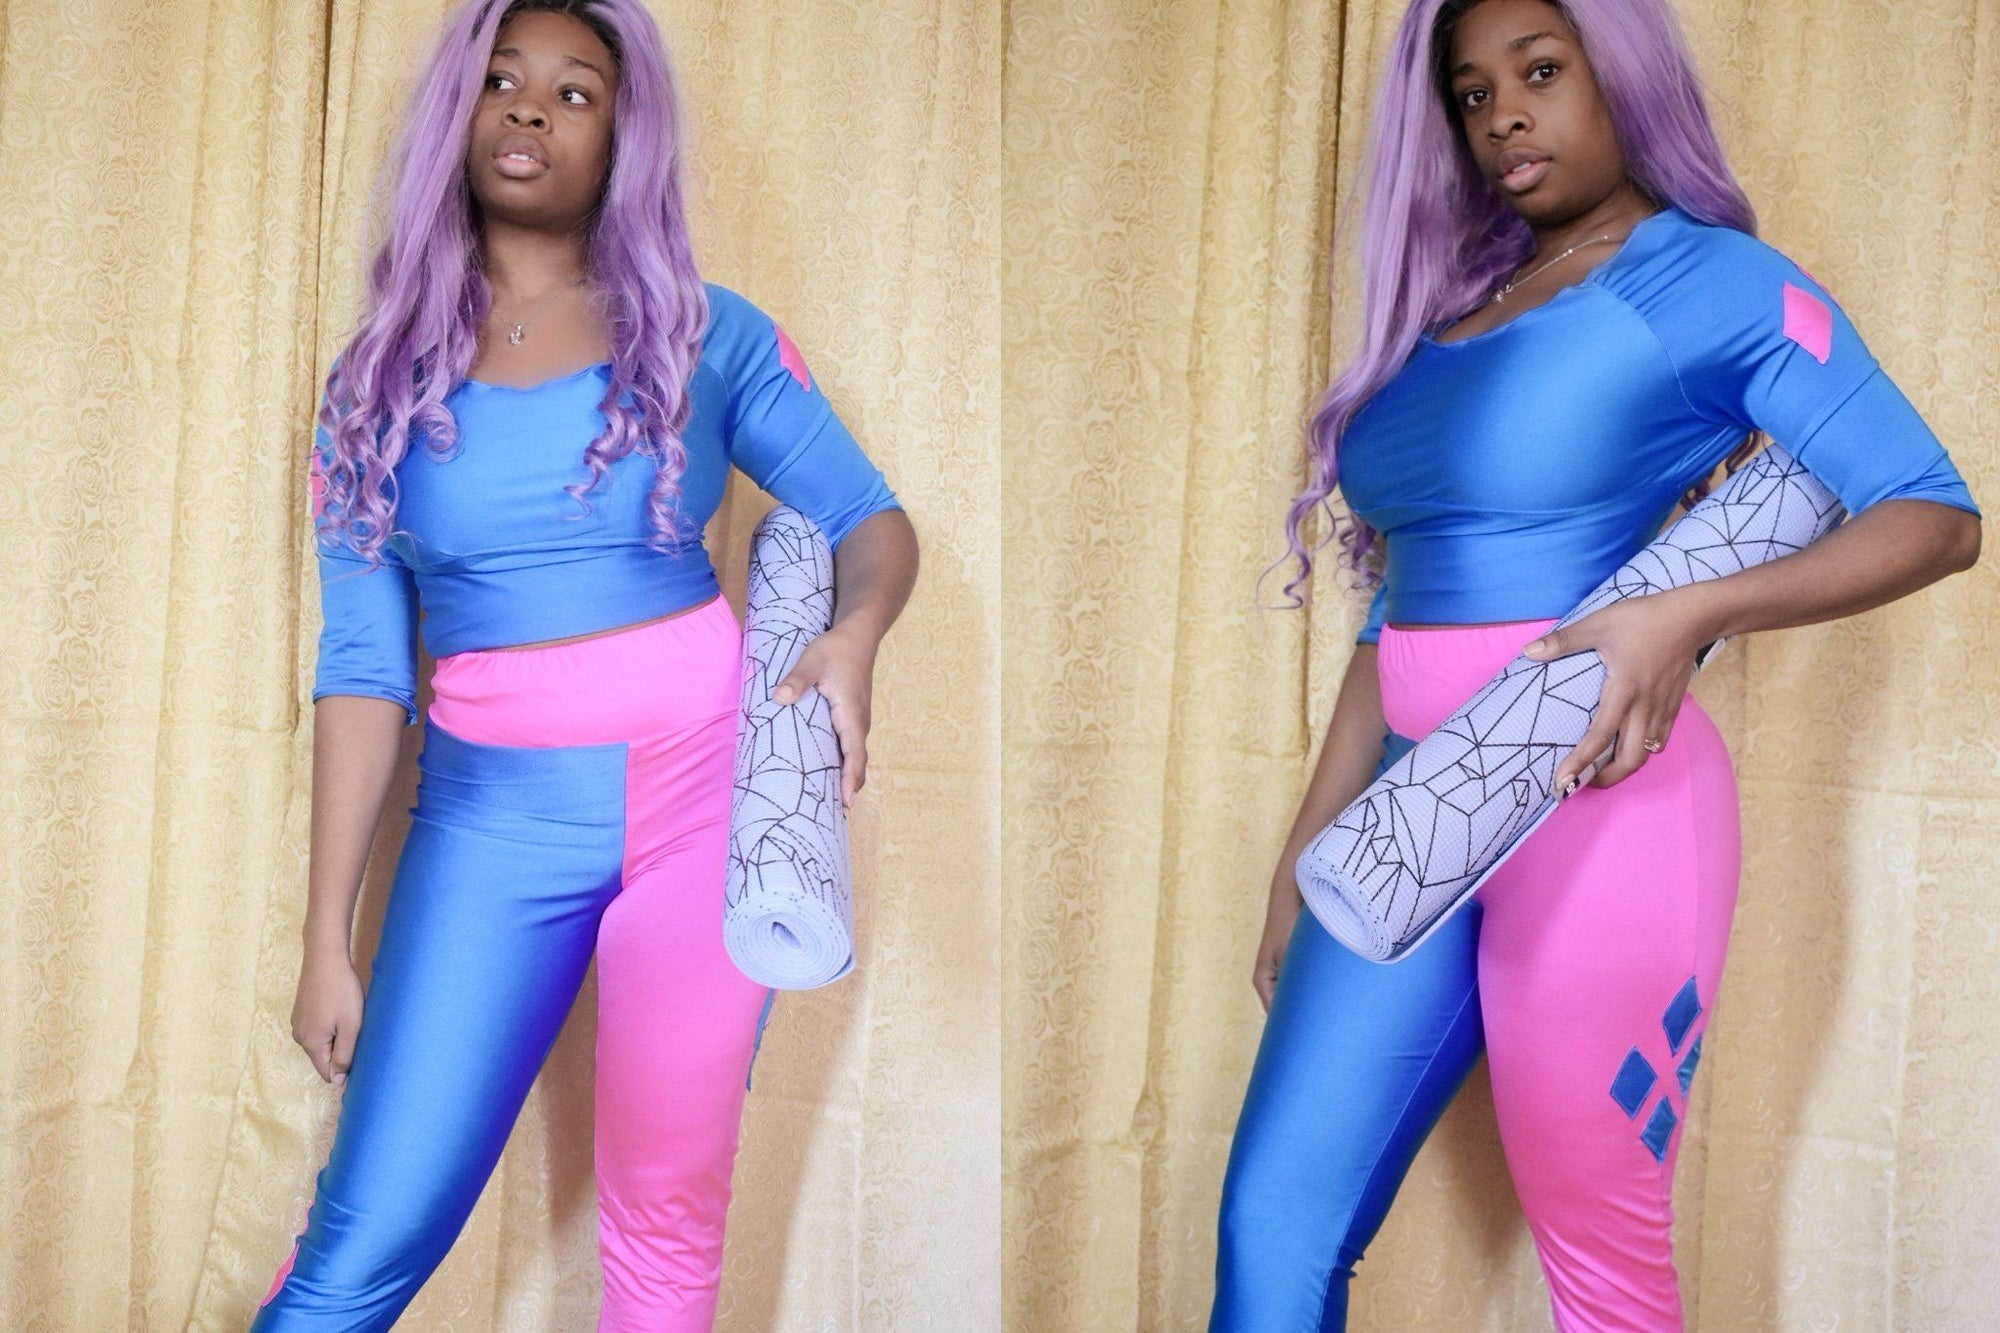 Cosplay Meets the Gym Inspired DIY Sewing Tutorial